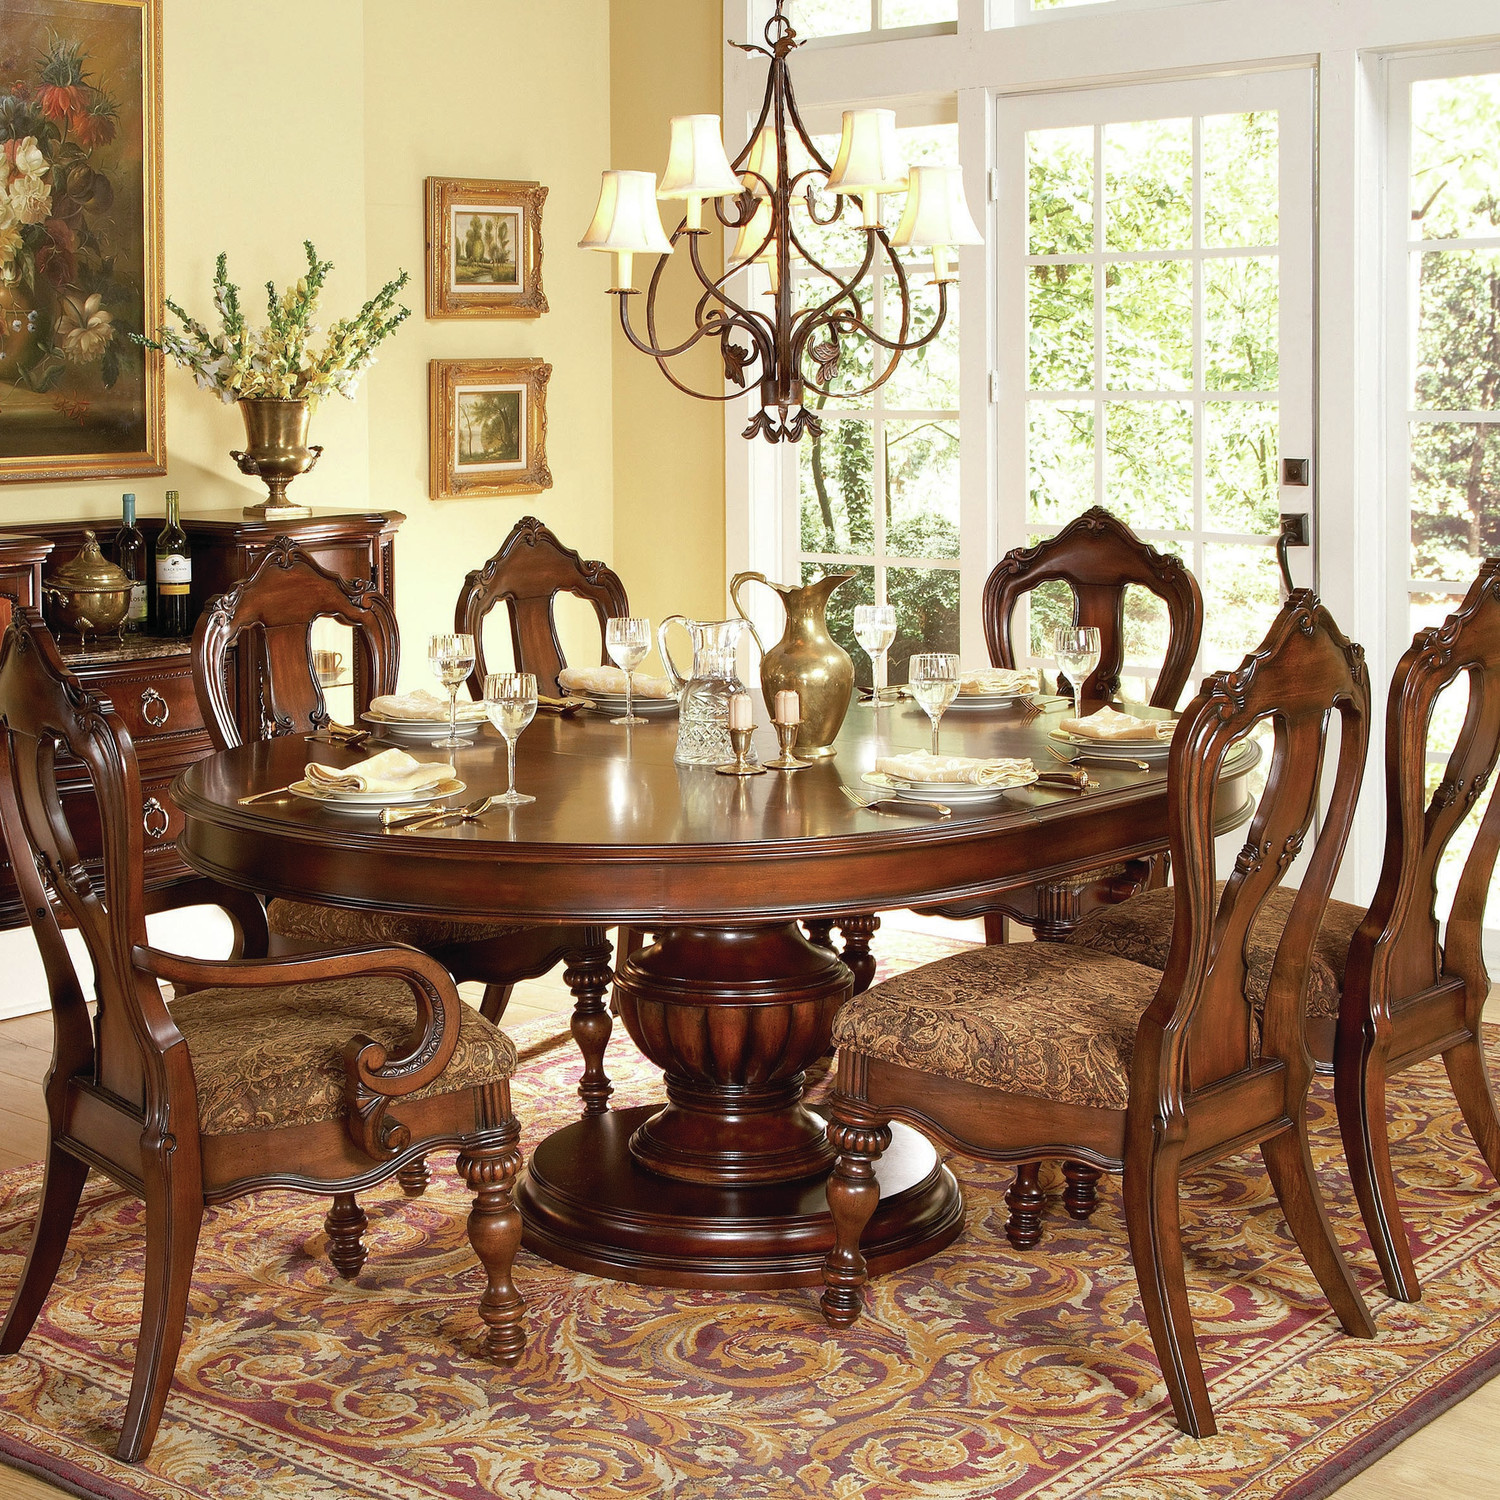 Getting a round dining room table for 6 by your own for Fancy round dining table